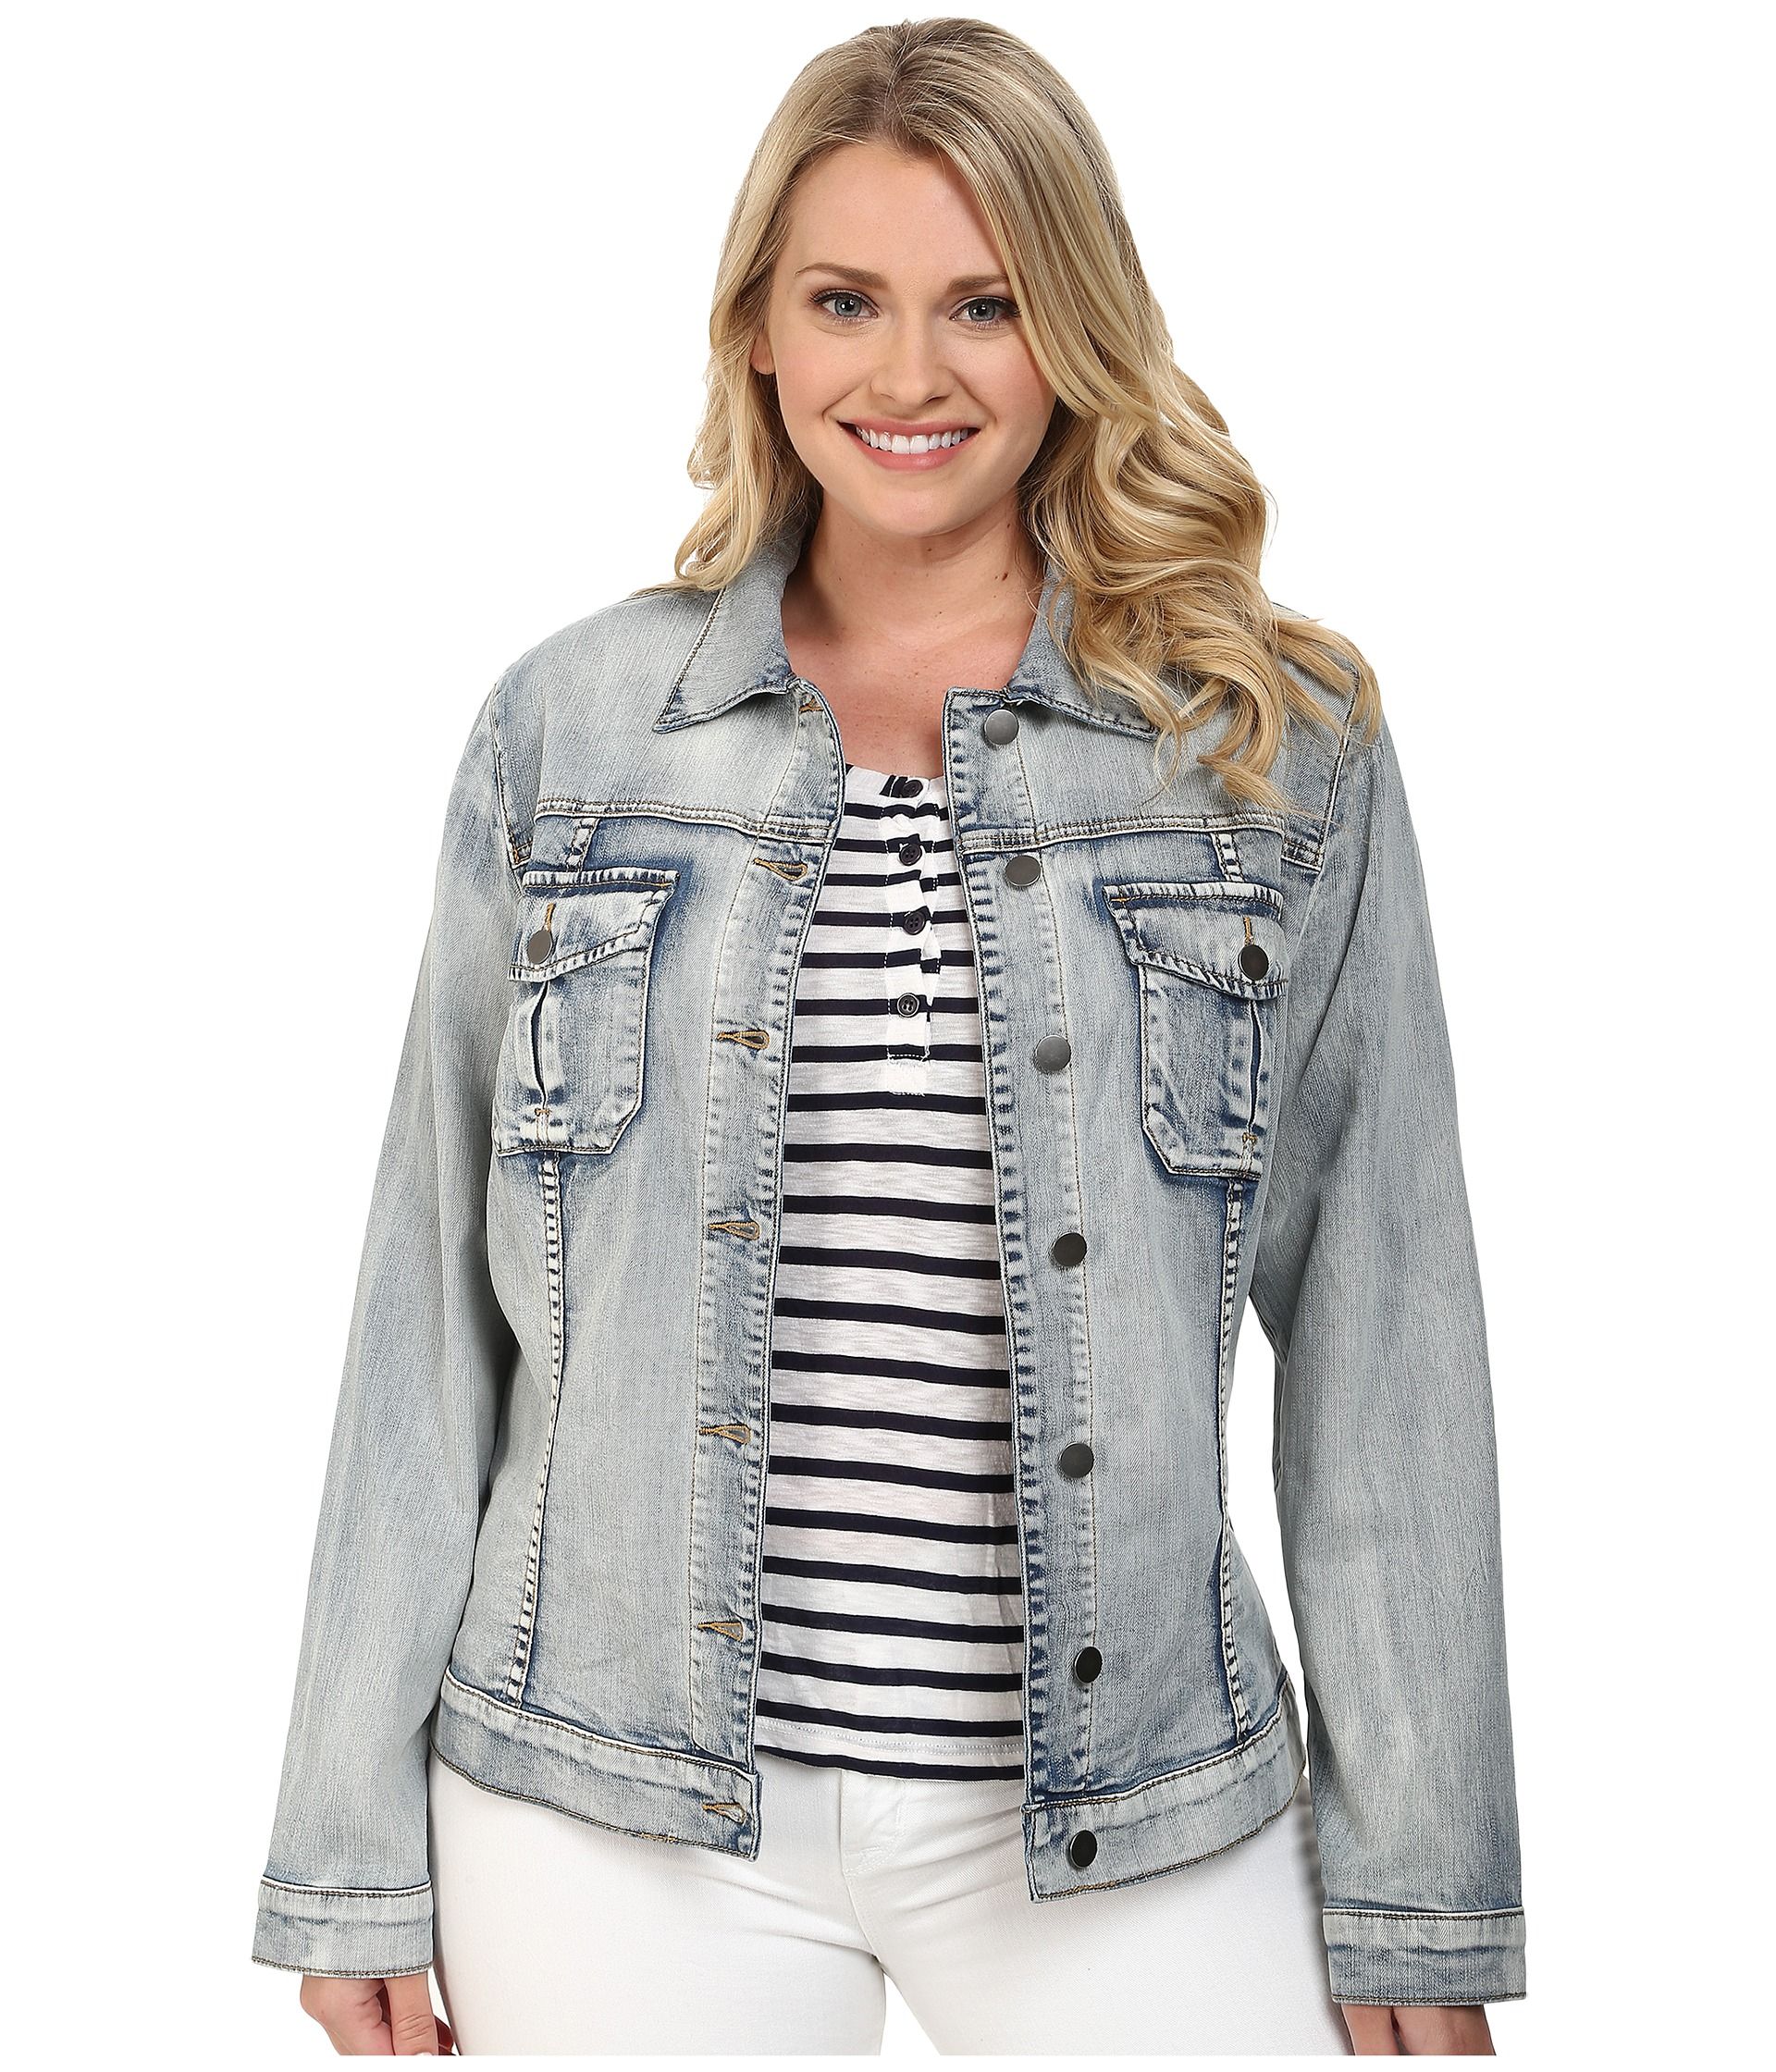 KUT from the Kloth Womens Amelia Denim Jacket in Vitality